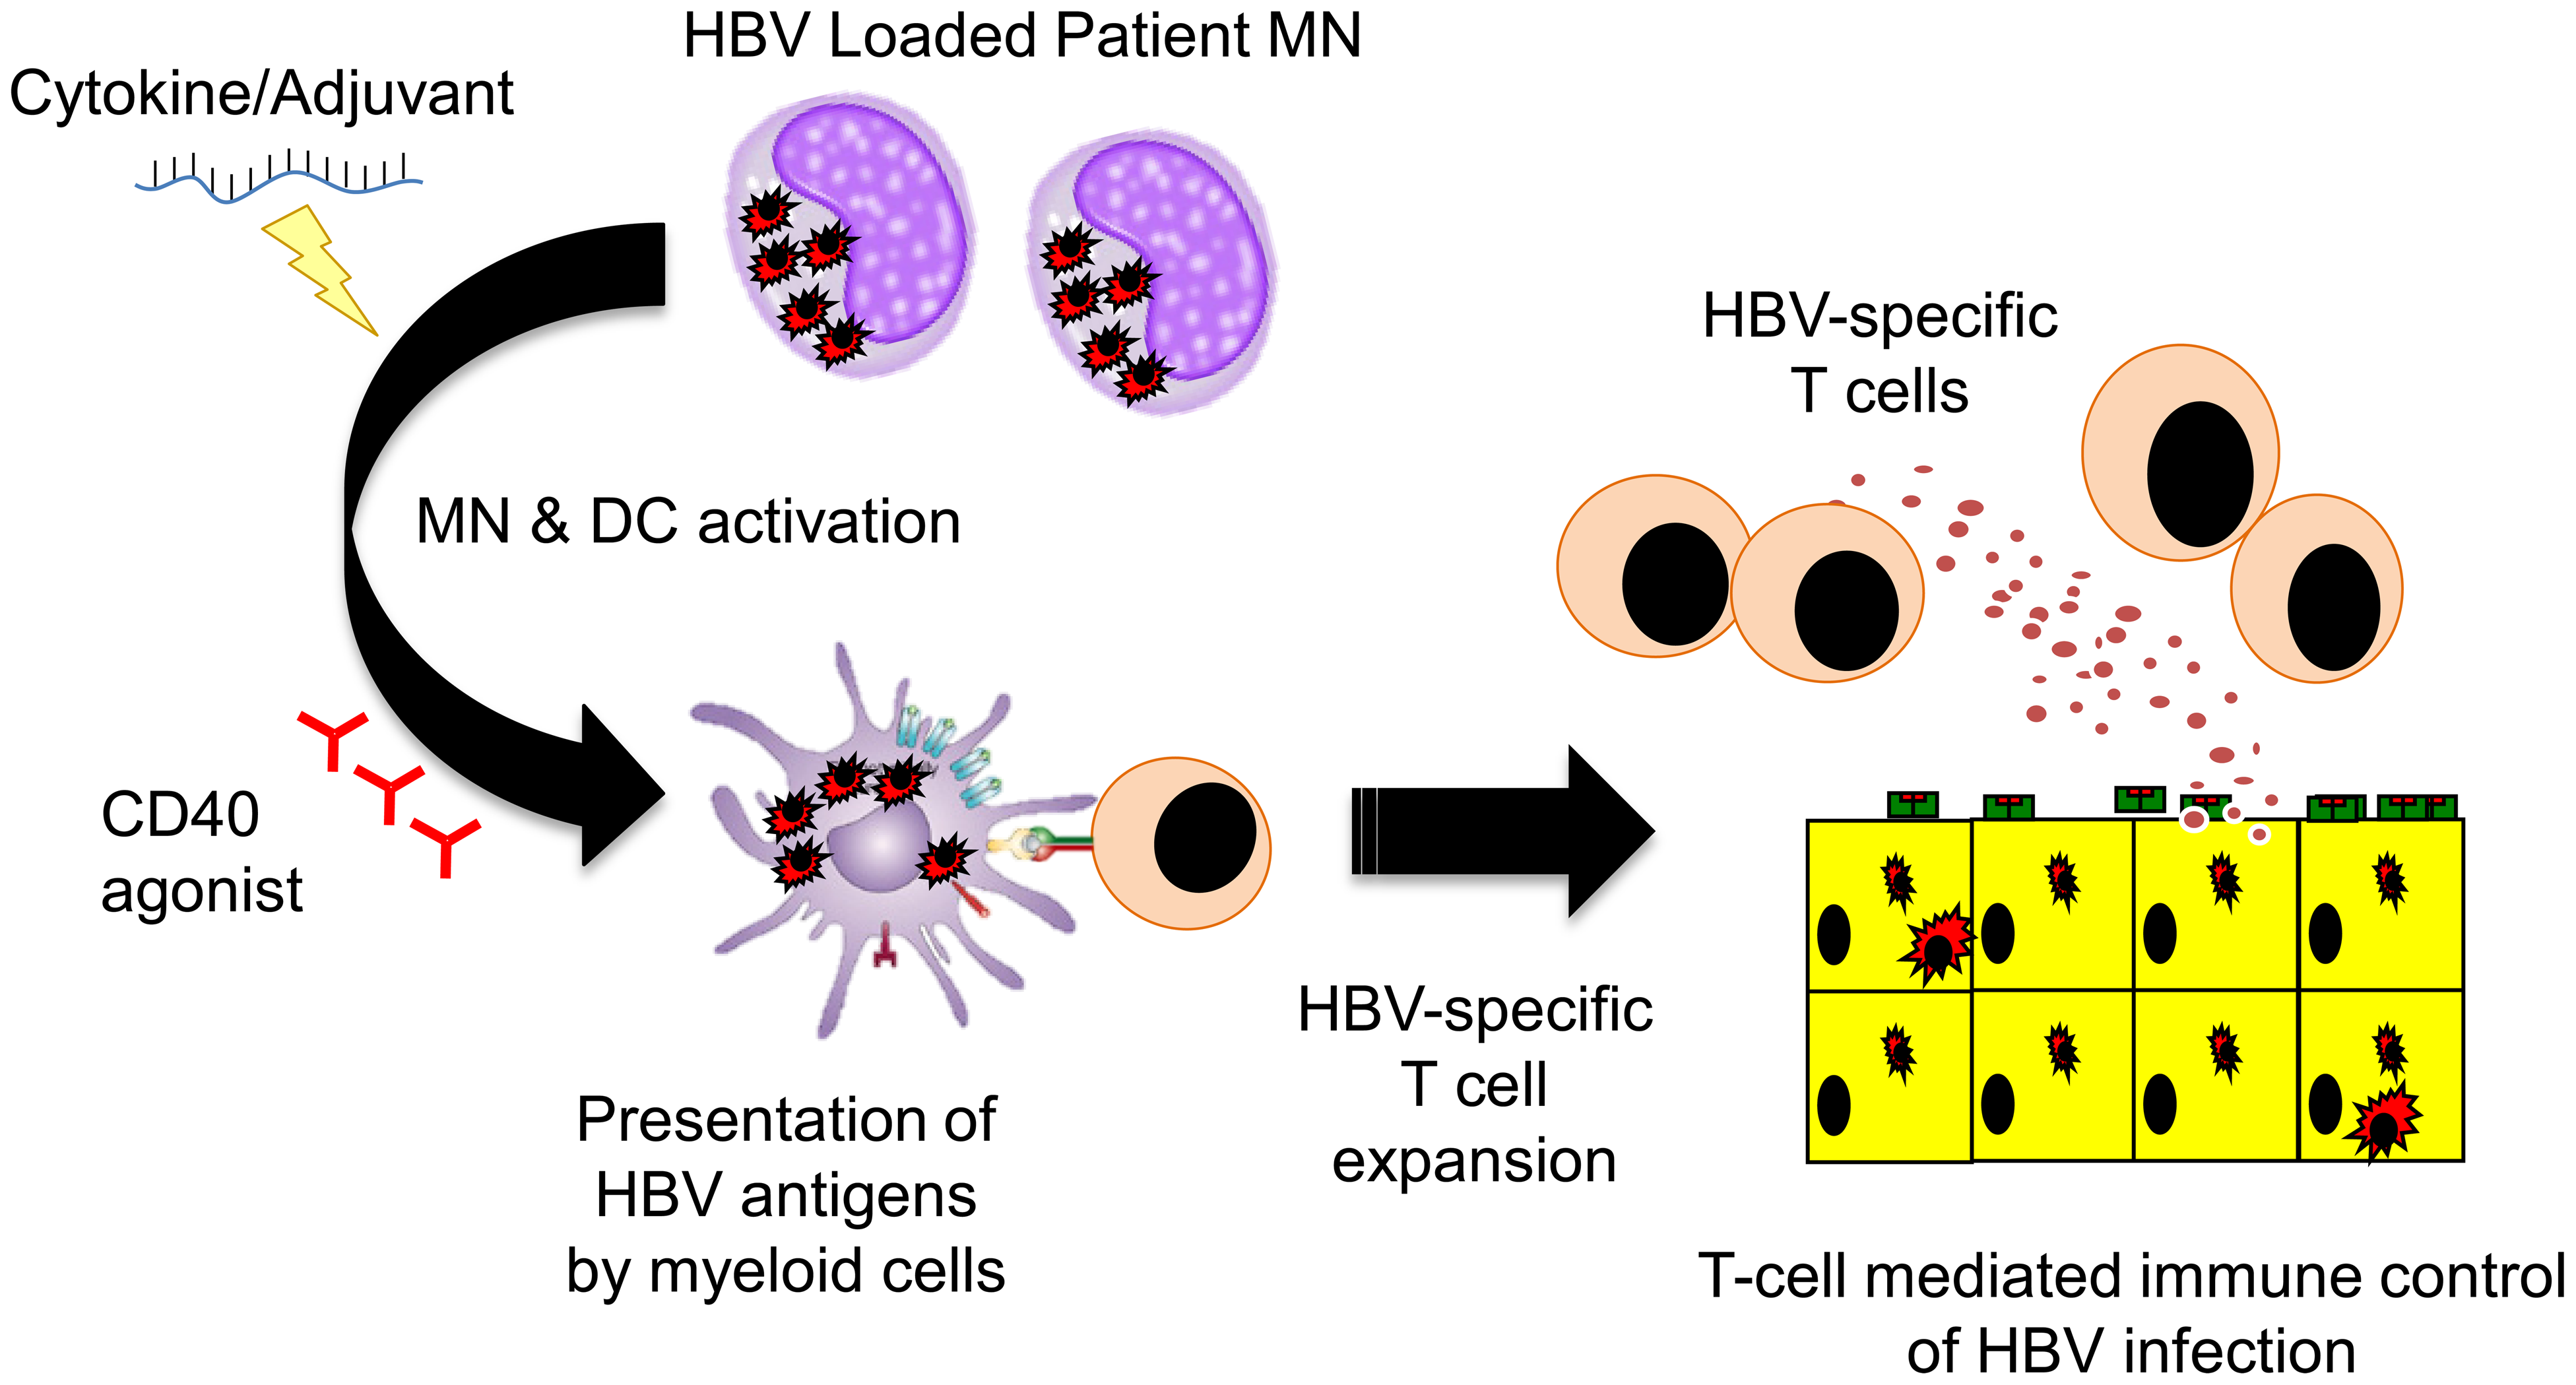 Schematic representation of the potential ability of HBV-loaded monocytes <em class=&quot;ref&quot;>[22]</em> to stimulate HBV-specific T cells trough TLR <em class=&quot;ref&quot;>[20]</em> or anti-CD40 agonists <em class=&quot;ref&quot;>[21]</em>.